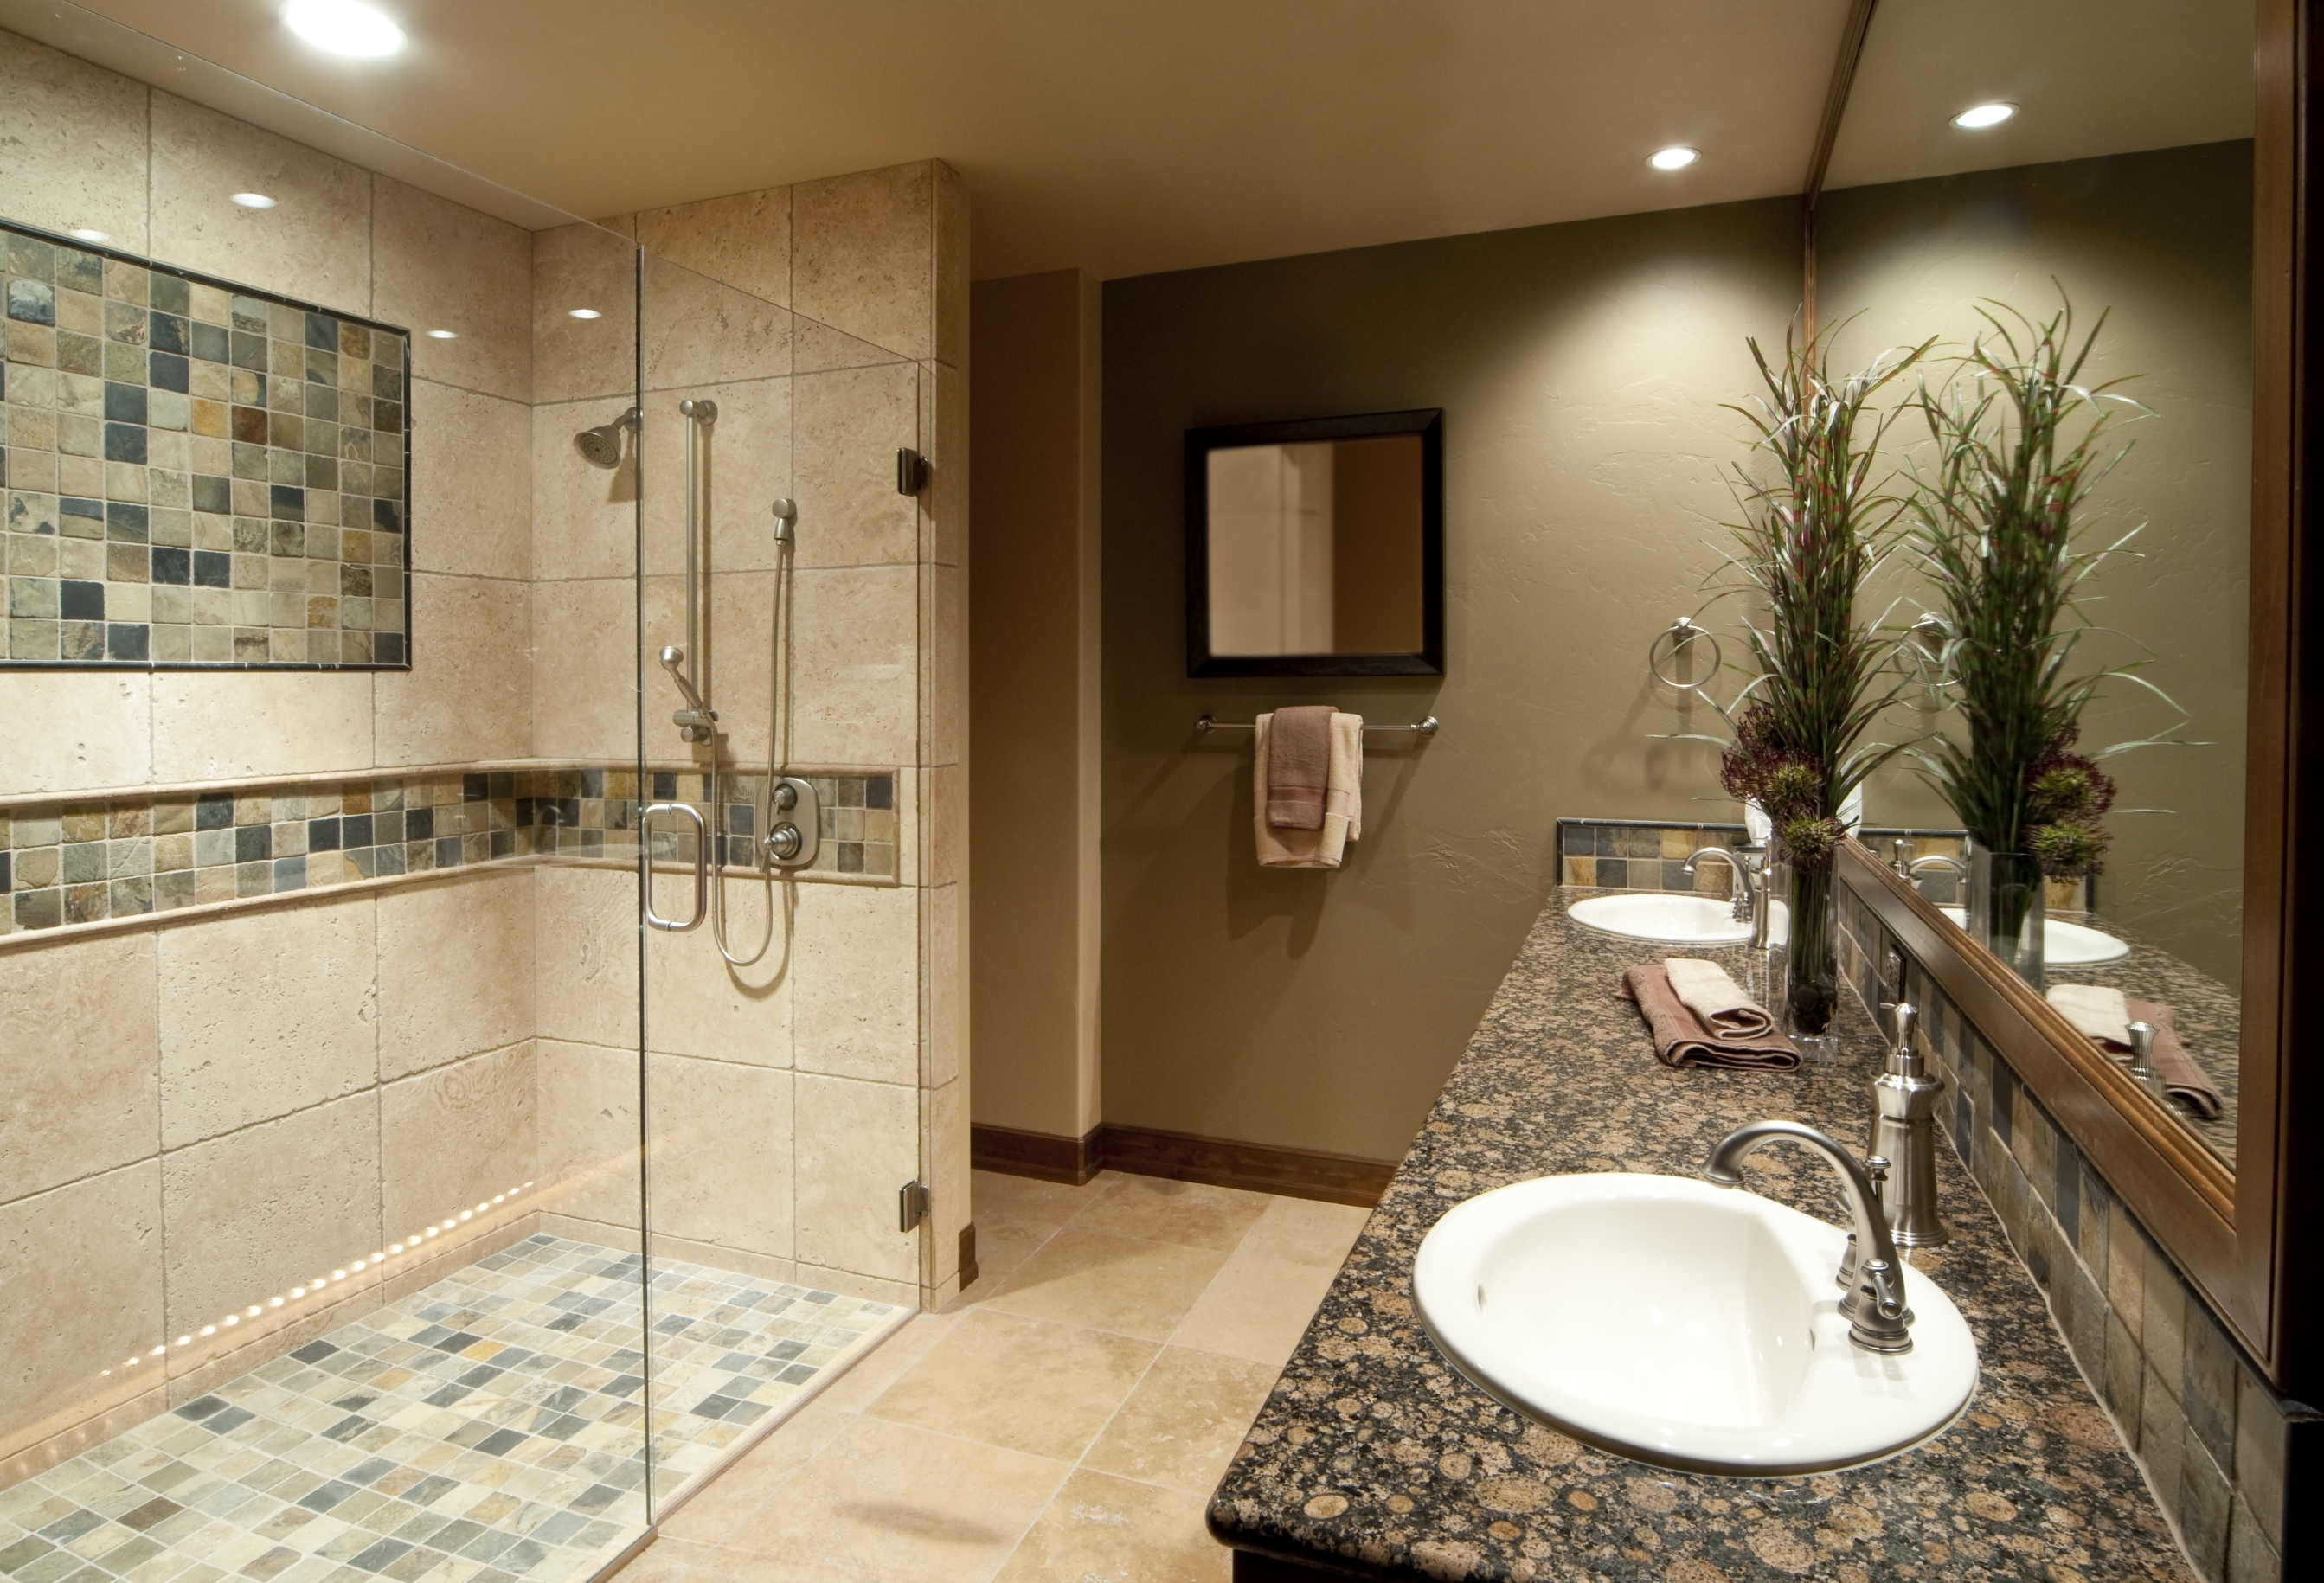 Cheap Ways To Improve Your Bathroom Custom Home Design - Inexpensive ways to remodel a bathroom